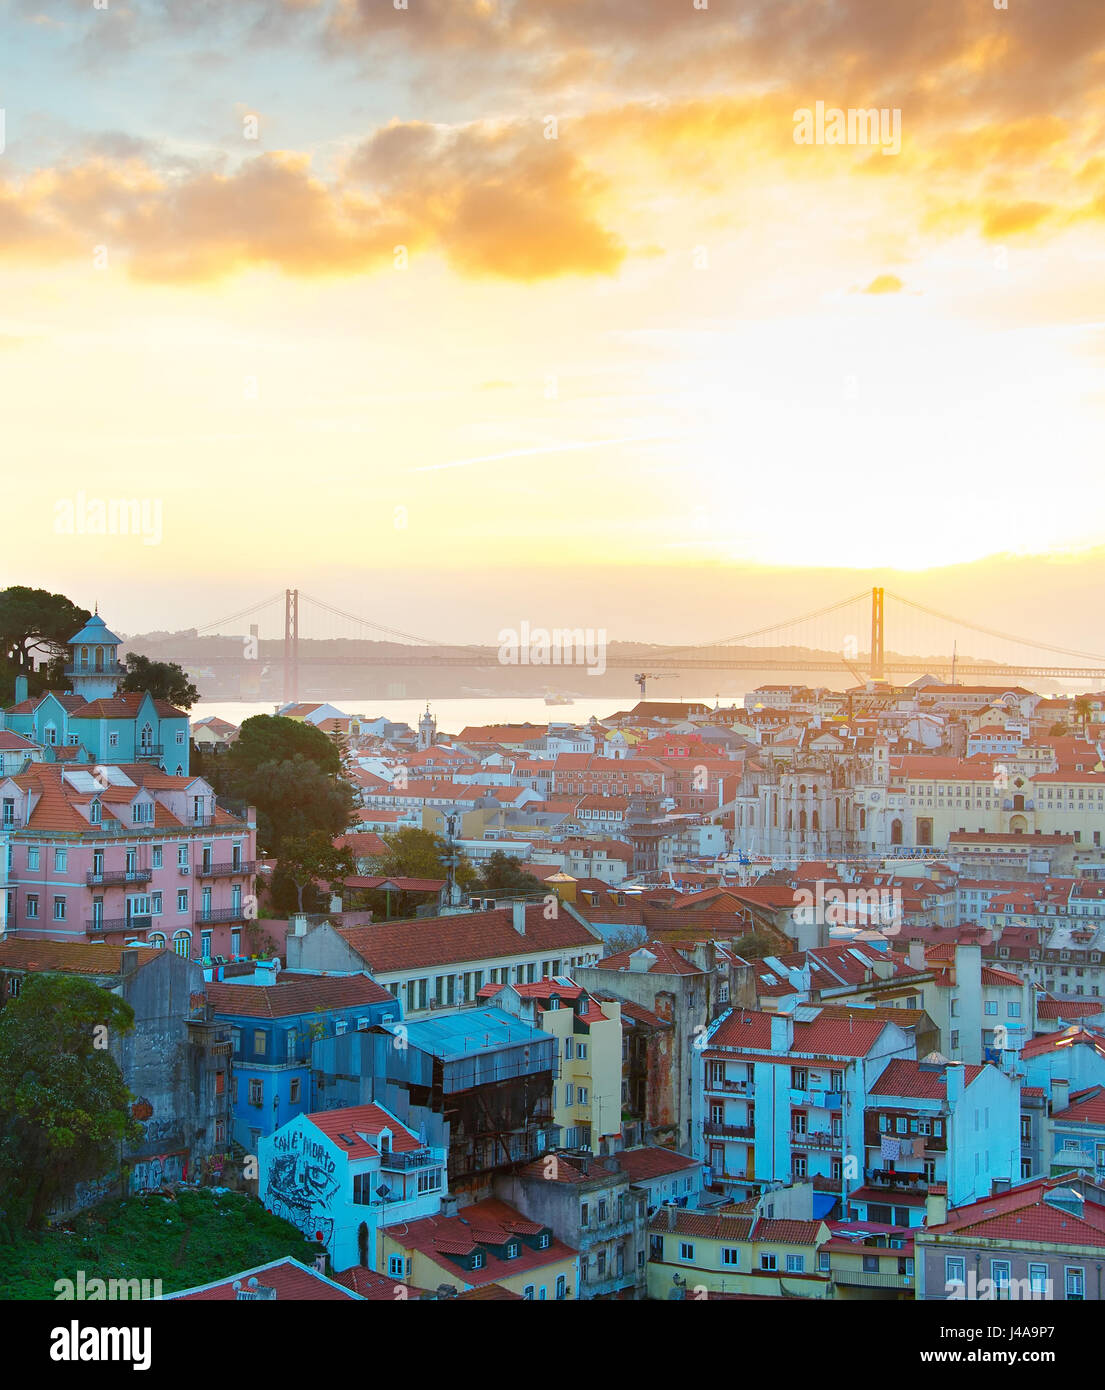 View of Lisbon at sunset with sun in the sky. Portugal - Stock Image